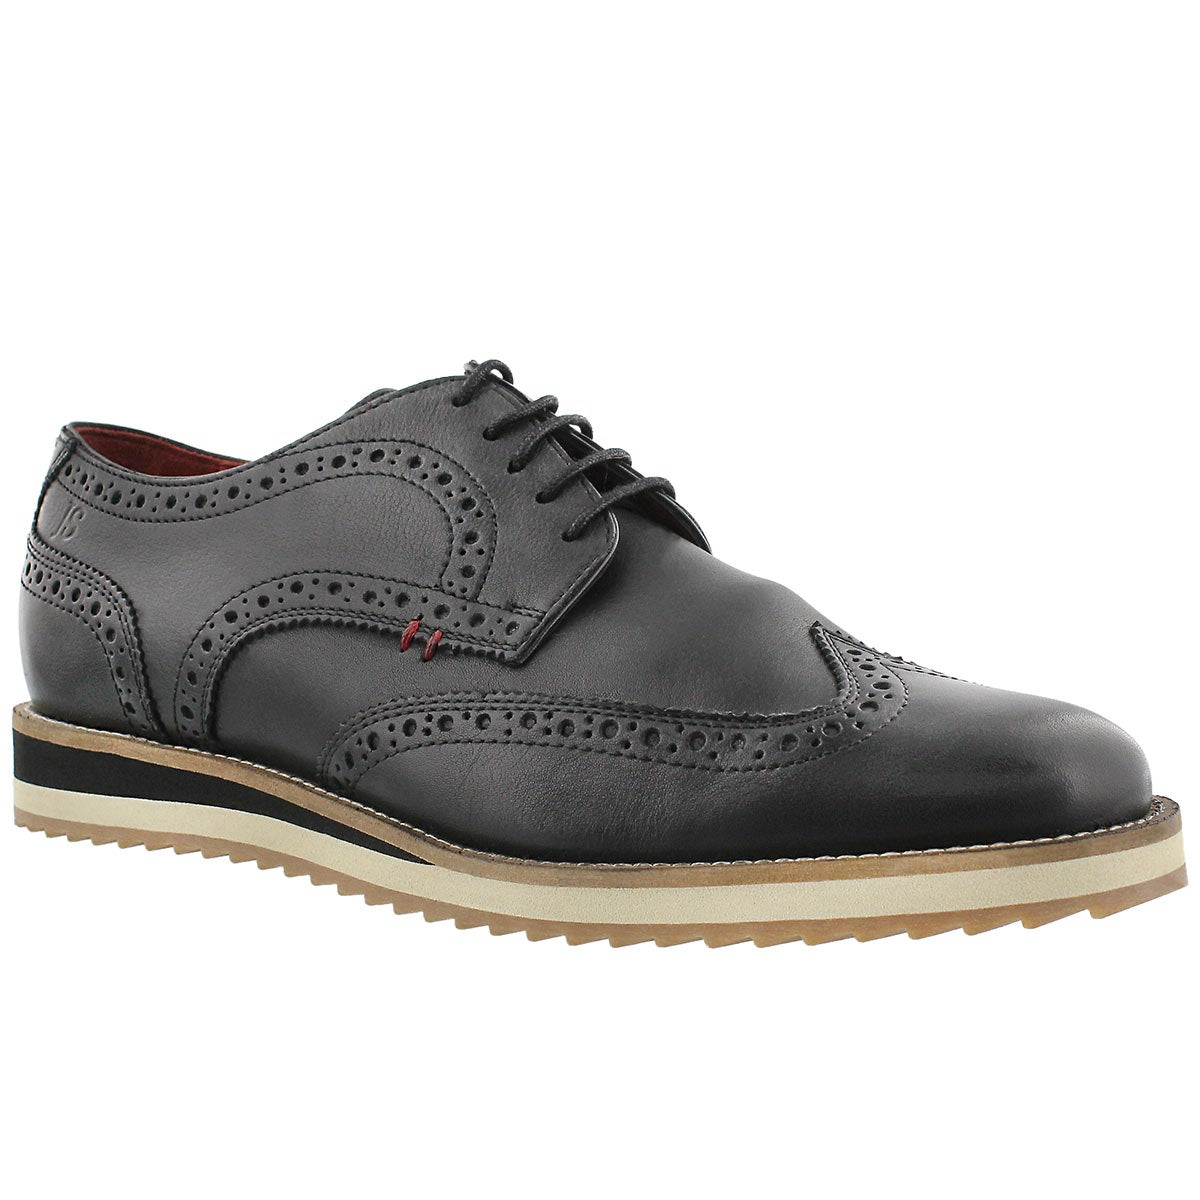 Mns Sven 01 black lthr casual oxford